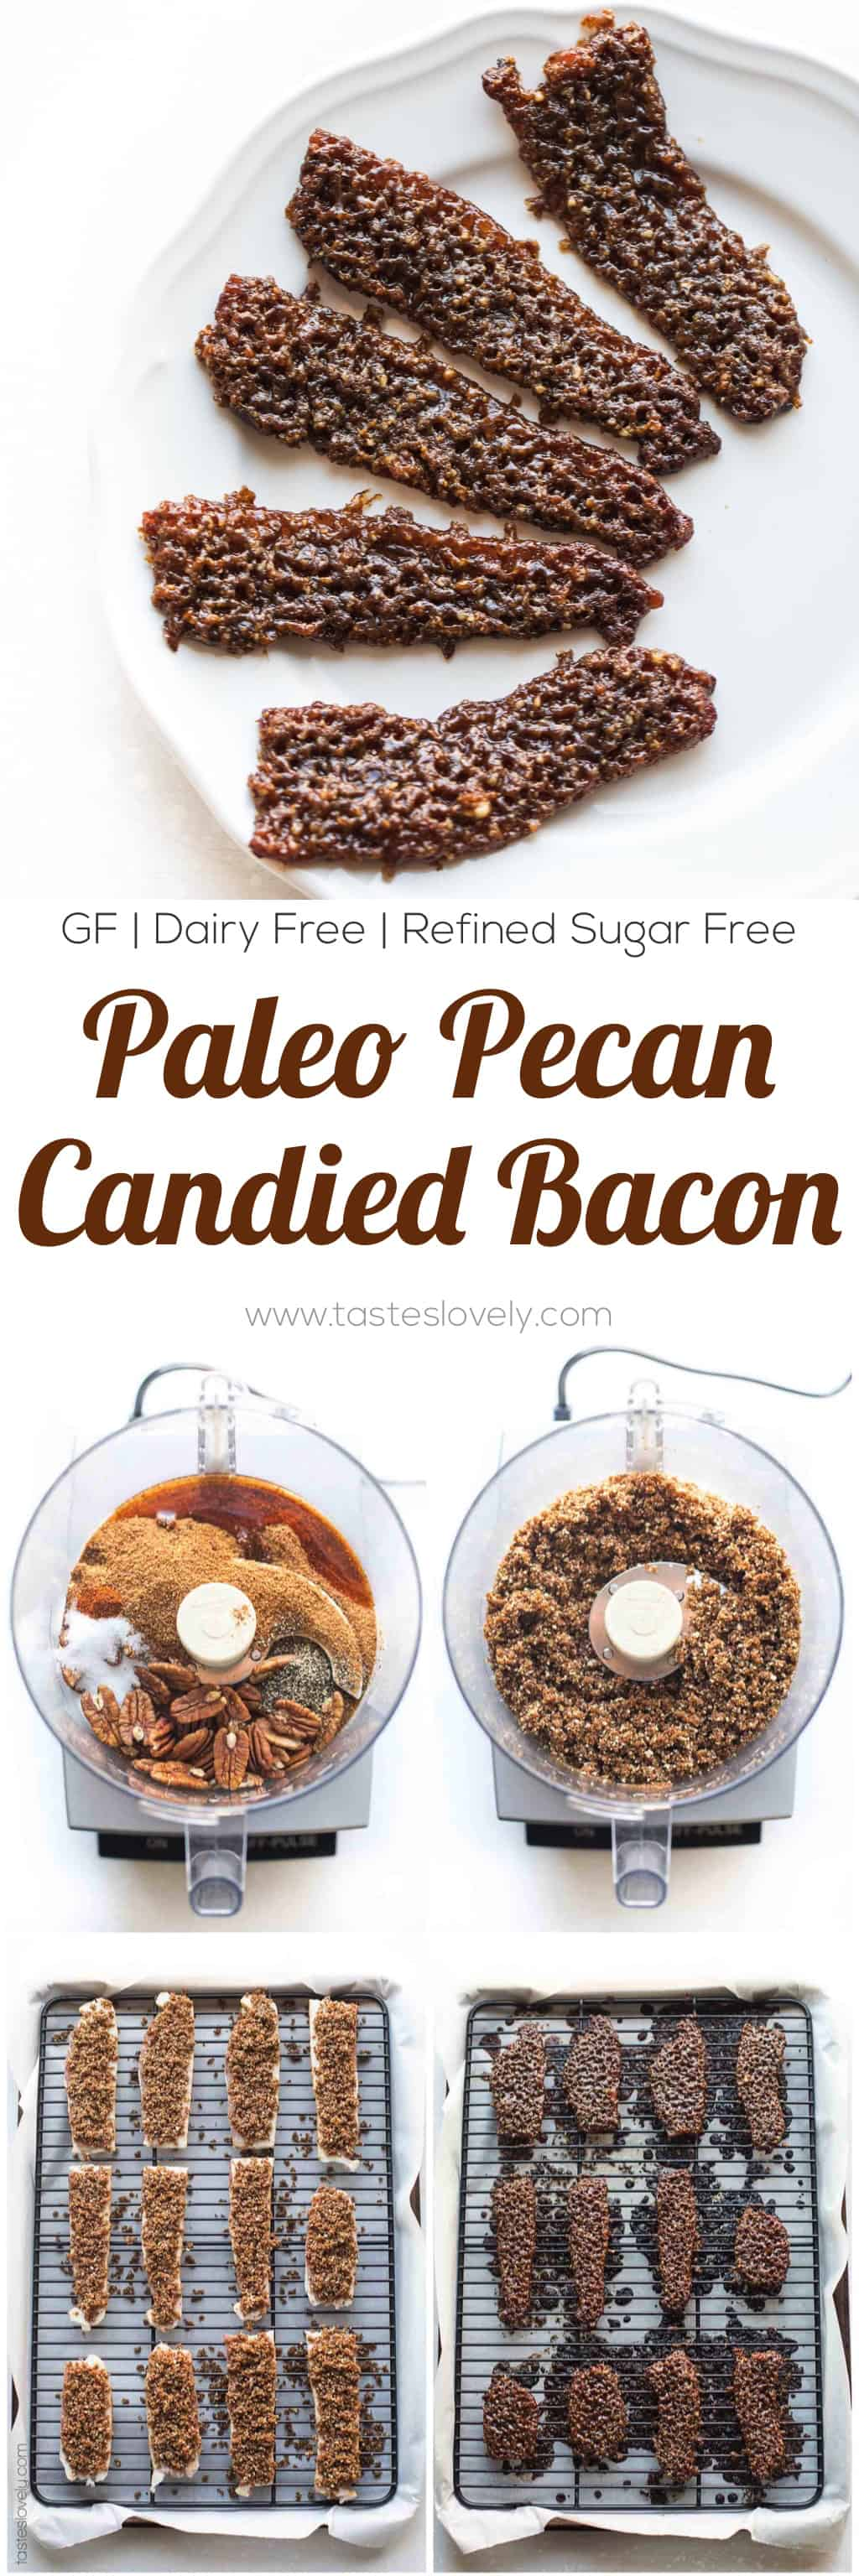 Paleo Pecan Candied Bacon - a salty + sweet brunch side or appetizer recipe (gluten free, dairy free, refined sugar free)